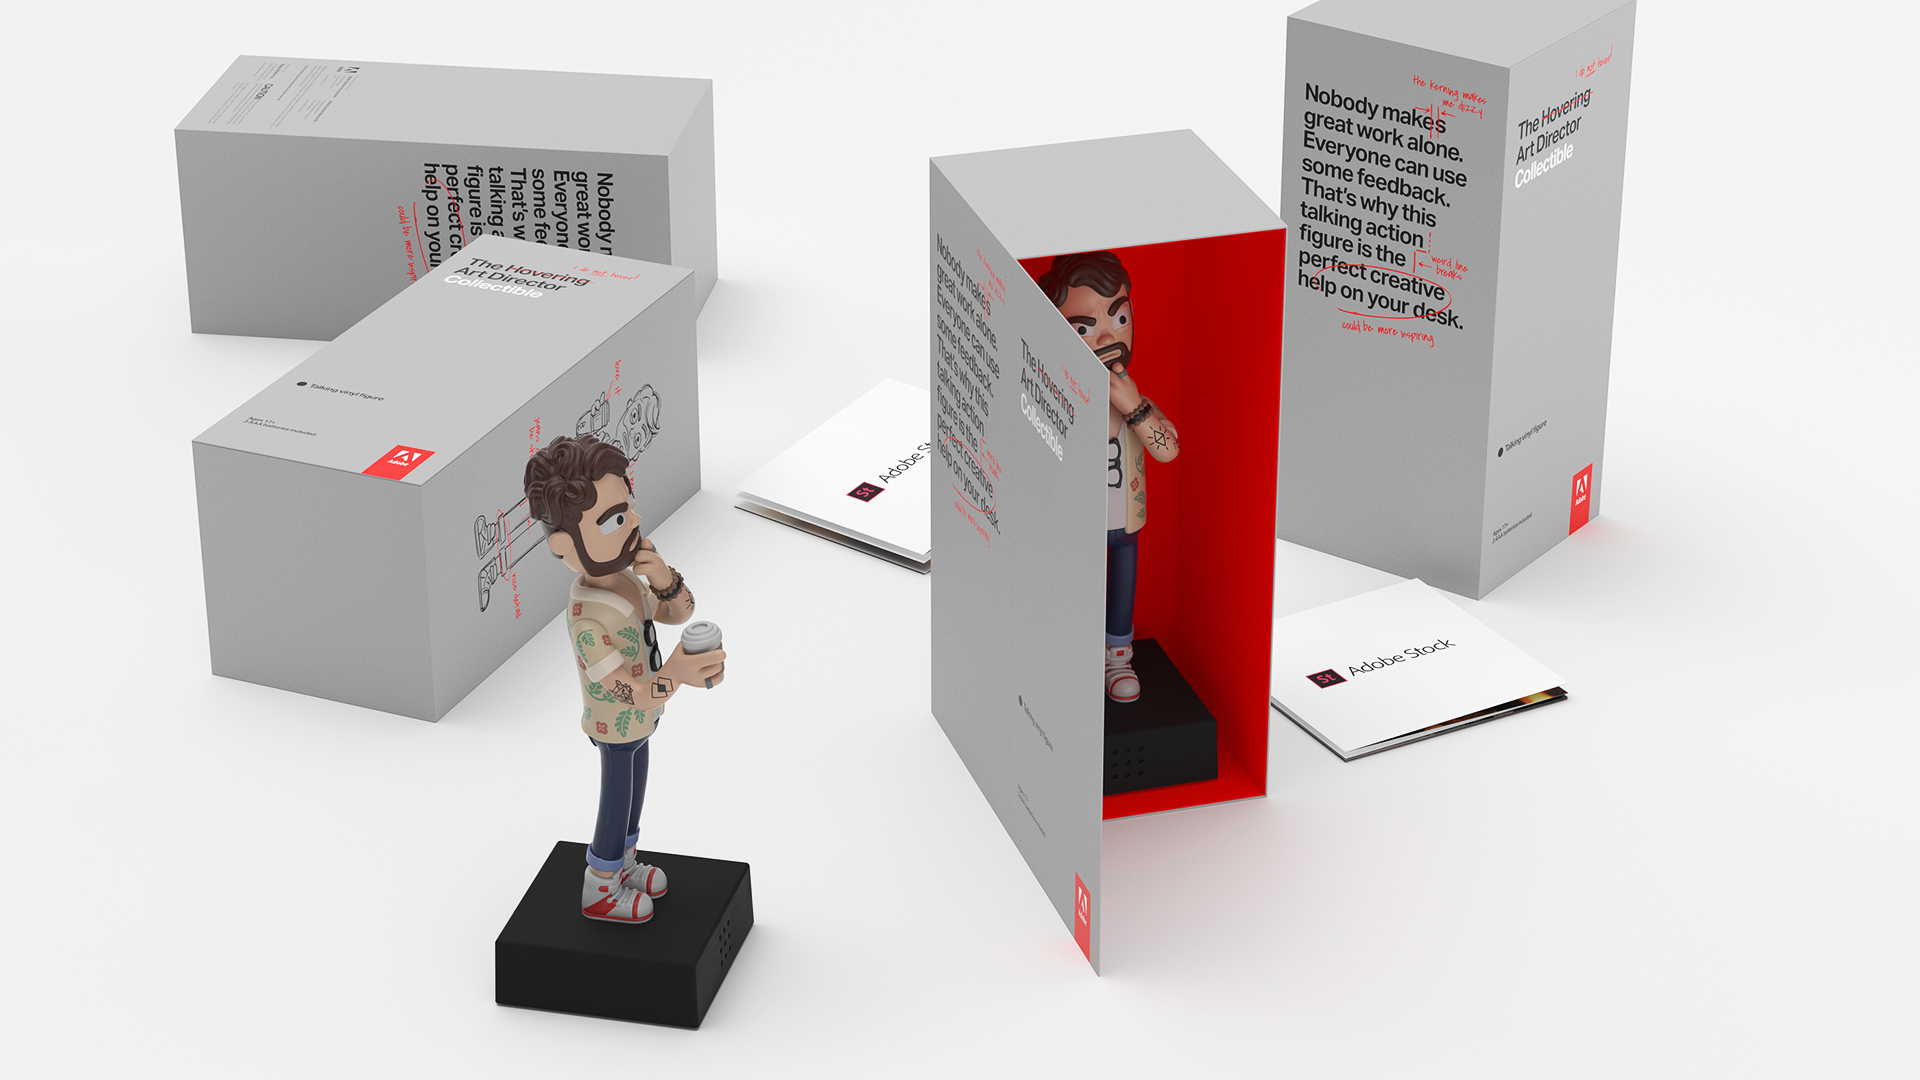 3MJP-–-Adobe-Stock-–-The-Hovering-Art-Director-Action-Figure